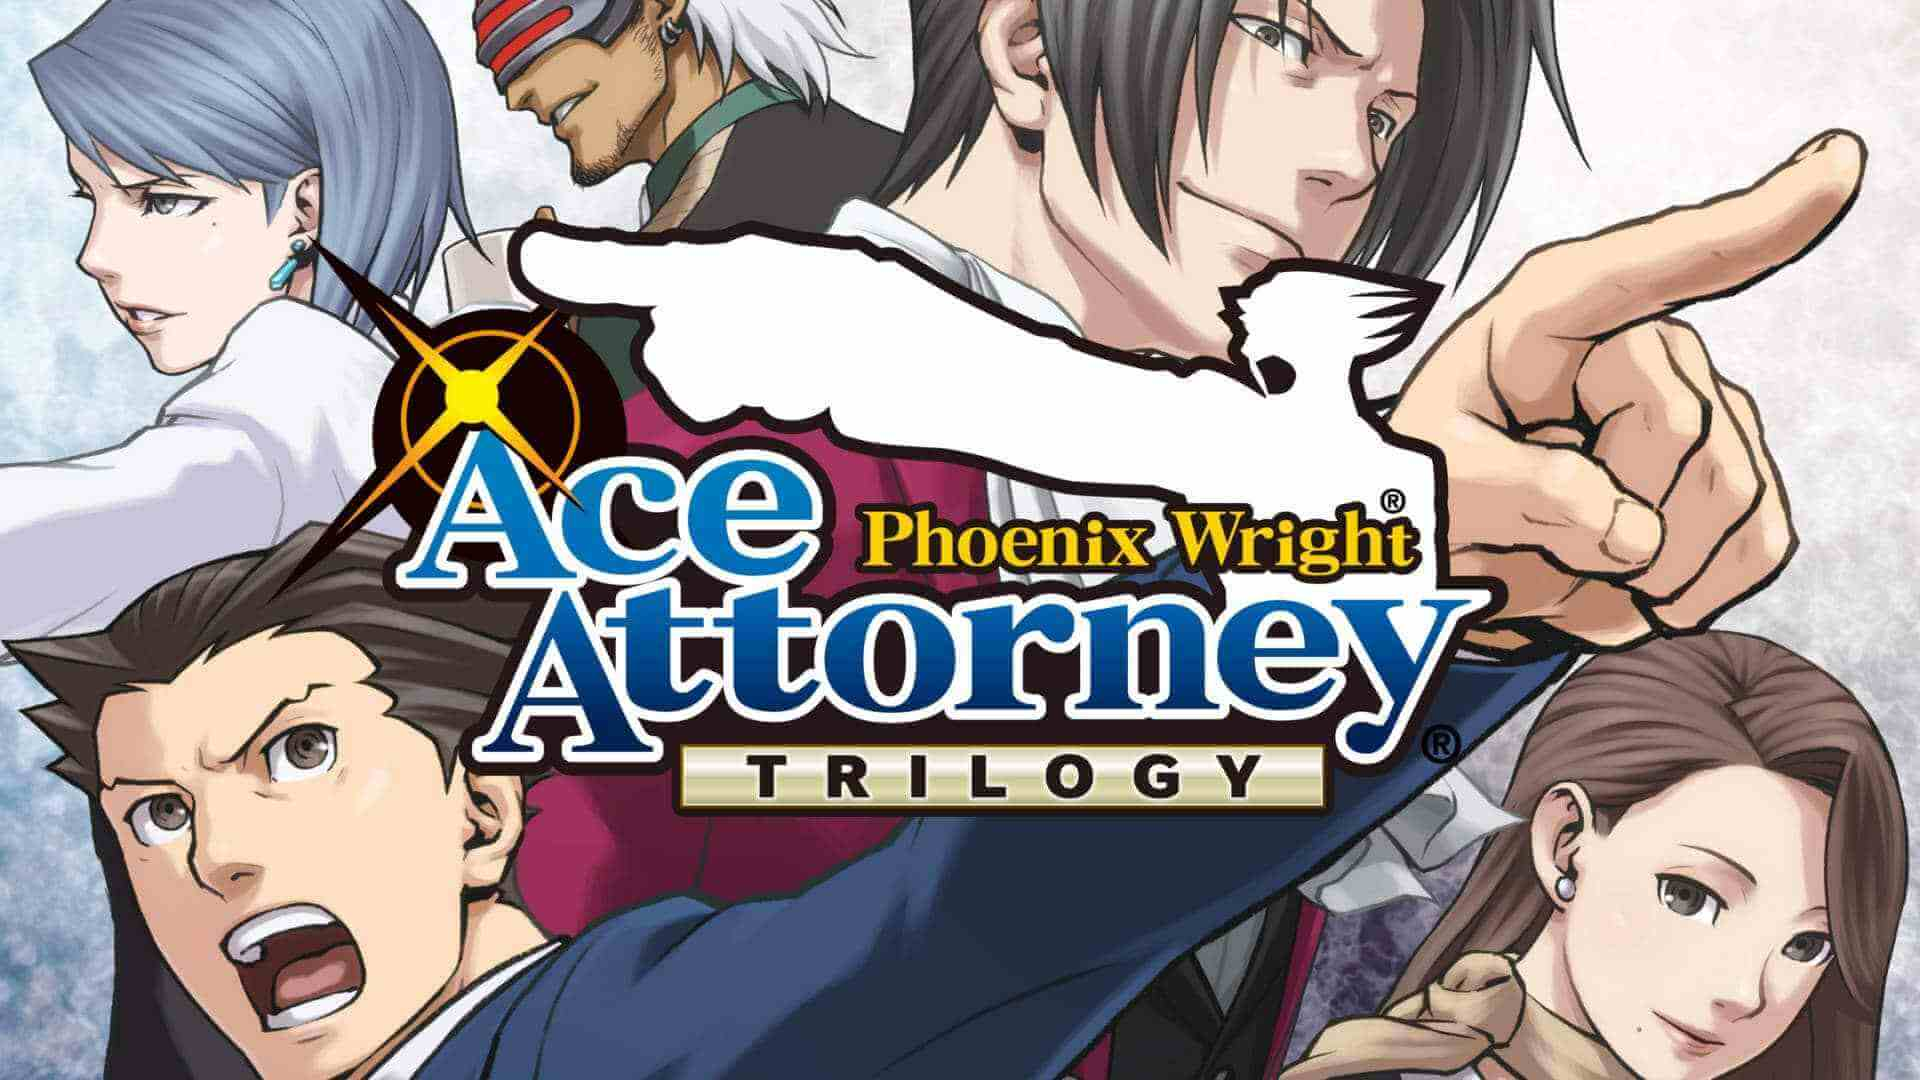 Phoenix wright ace attorney trilogy coming